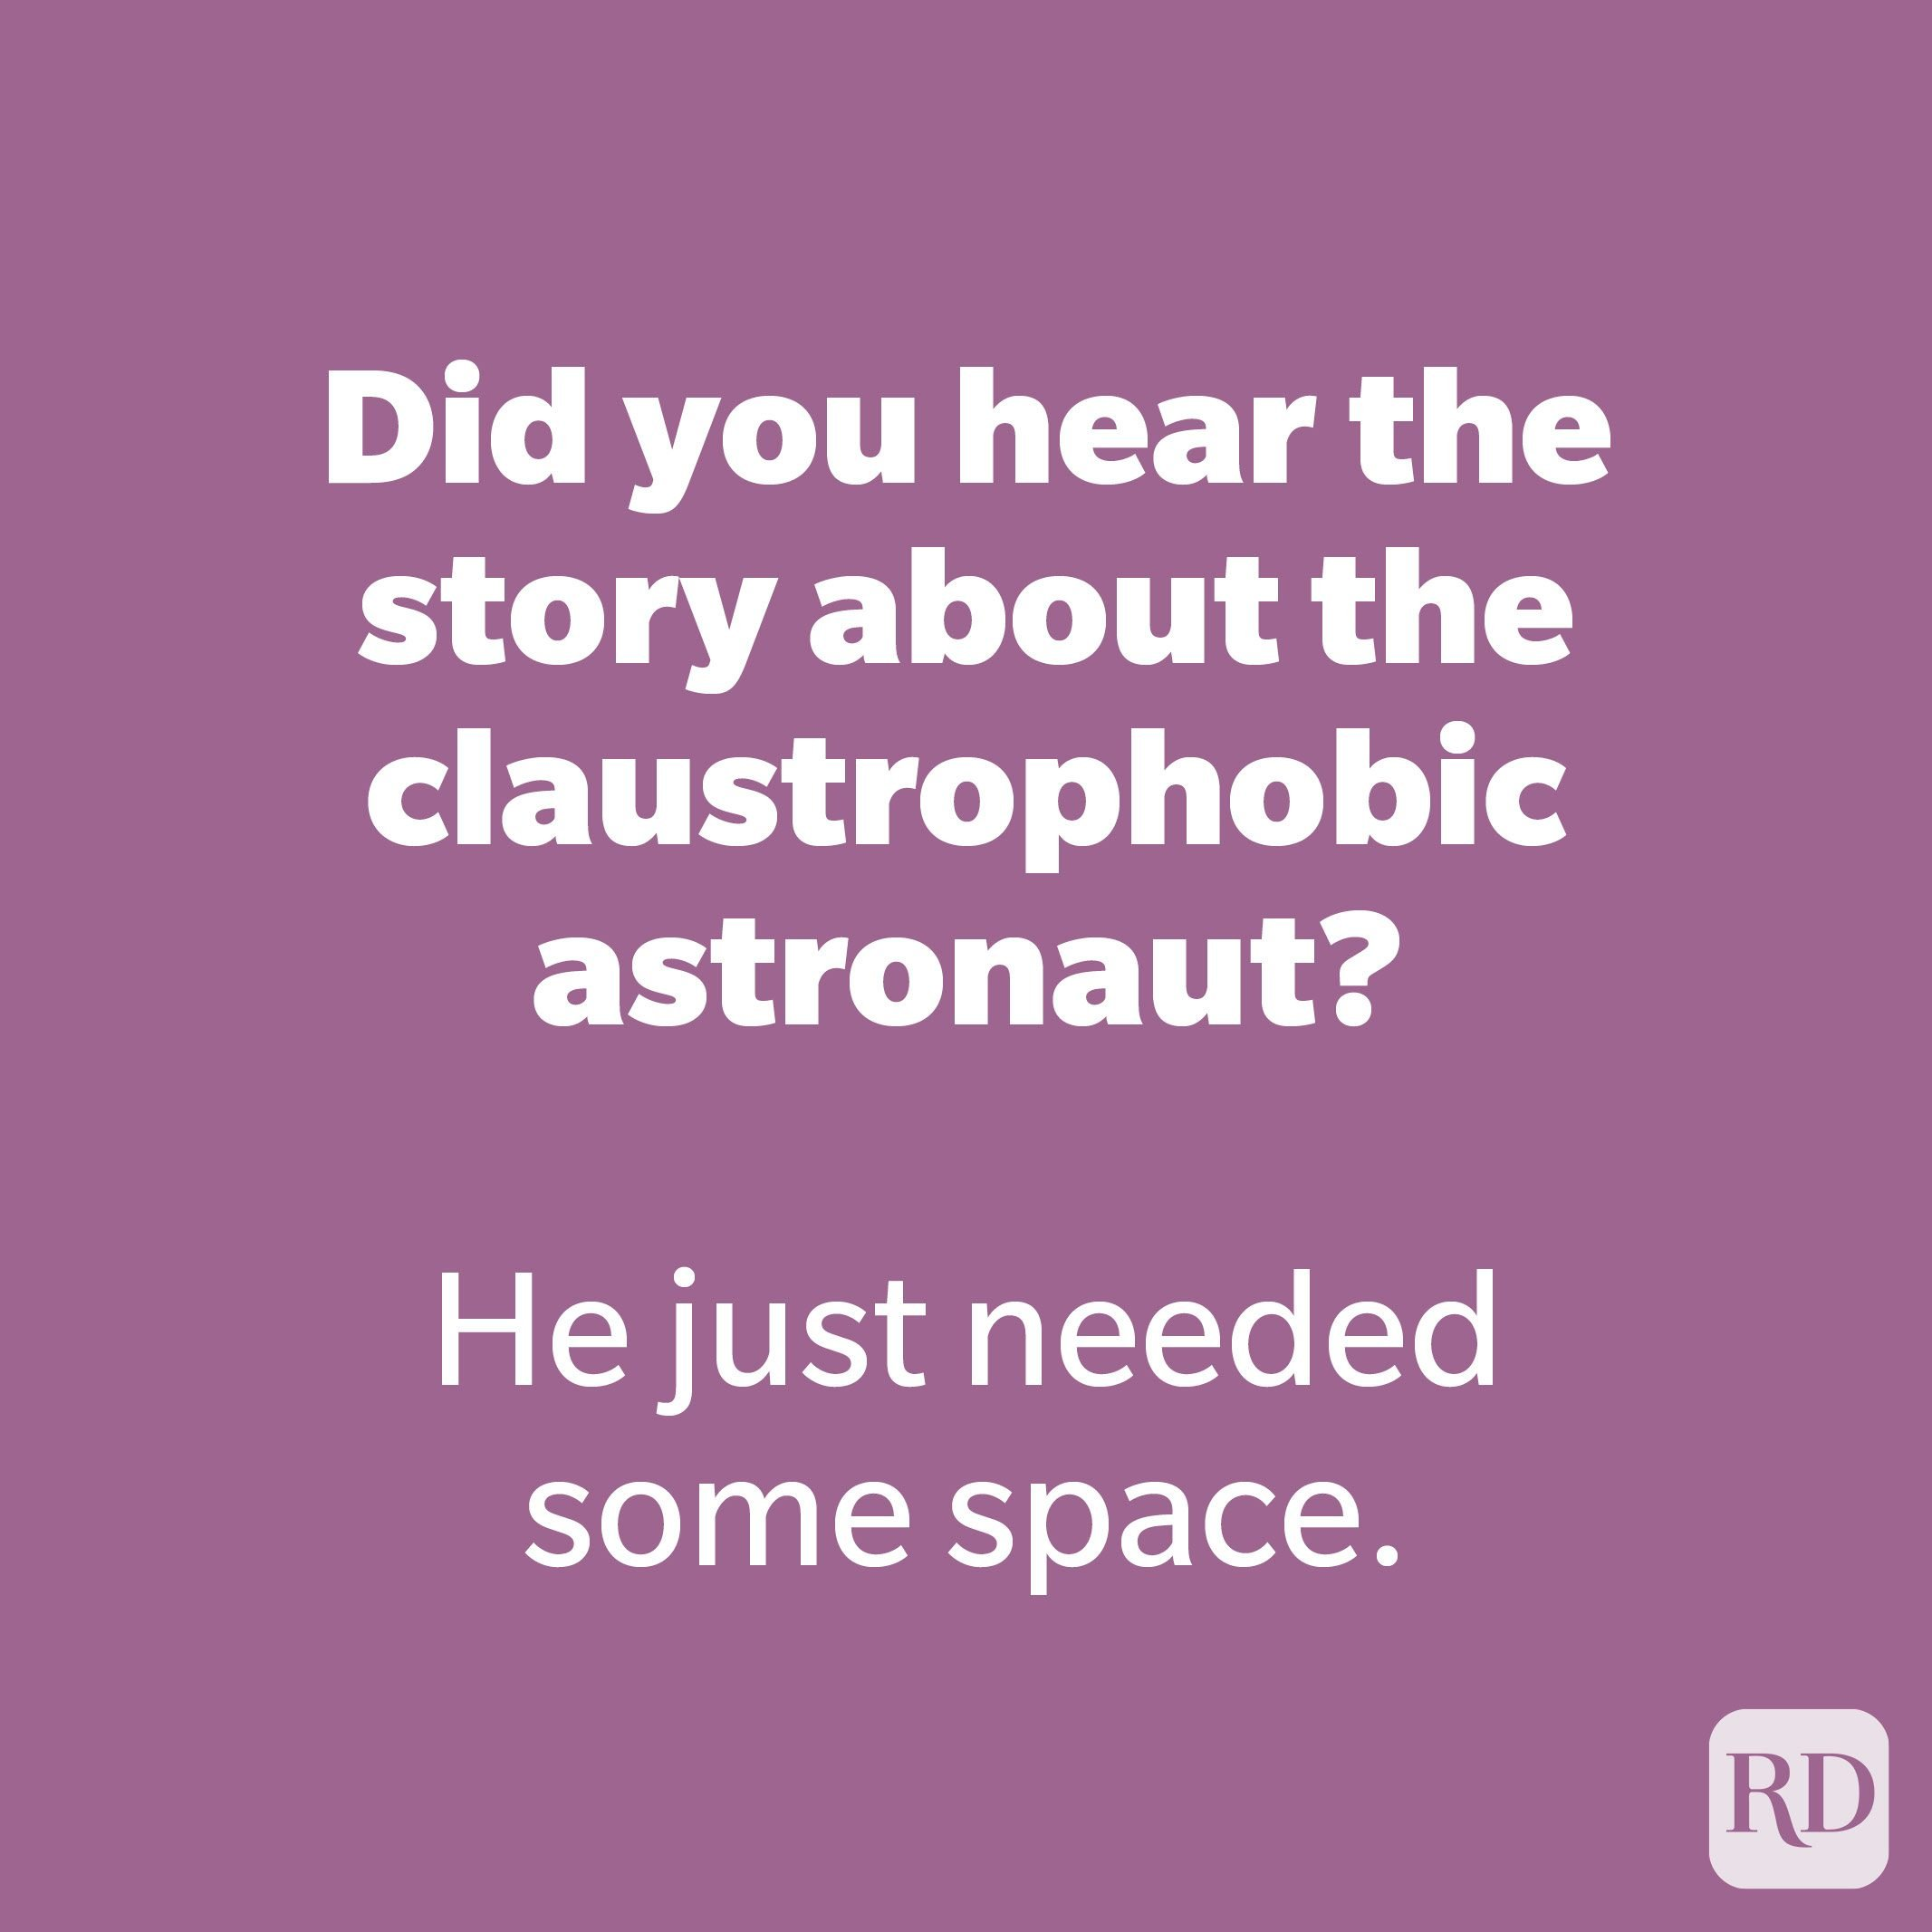 Did you hear the story about the claustrophobic astronaut?